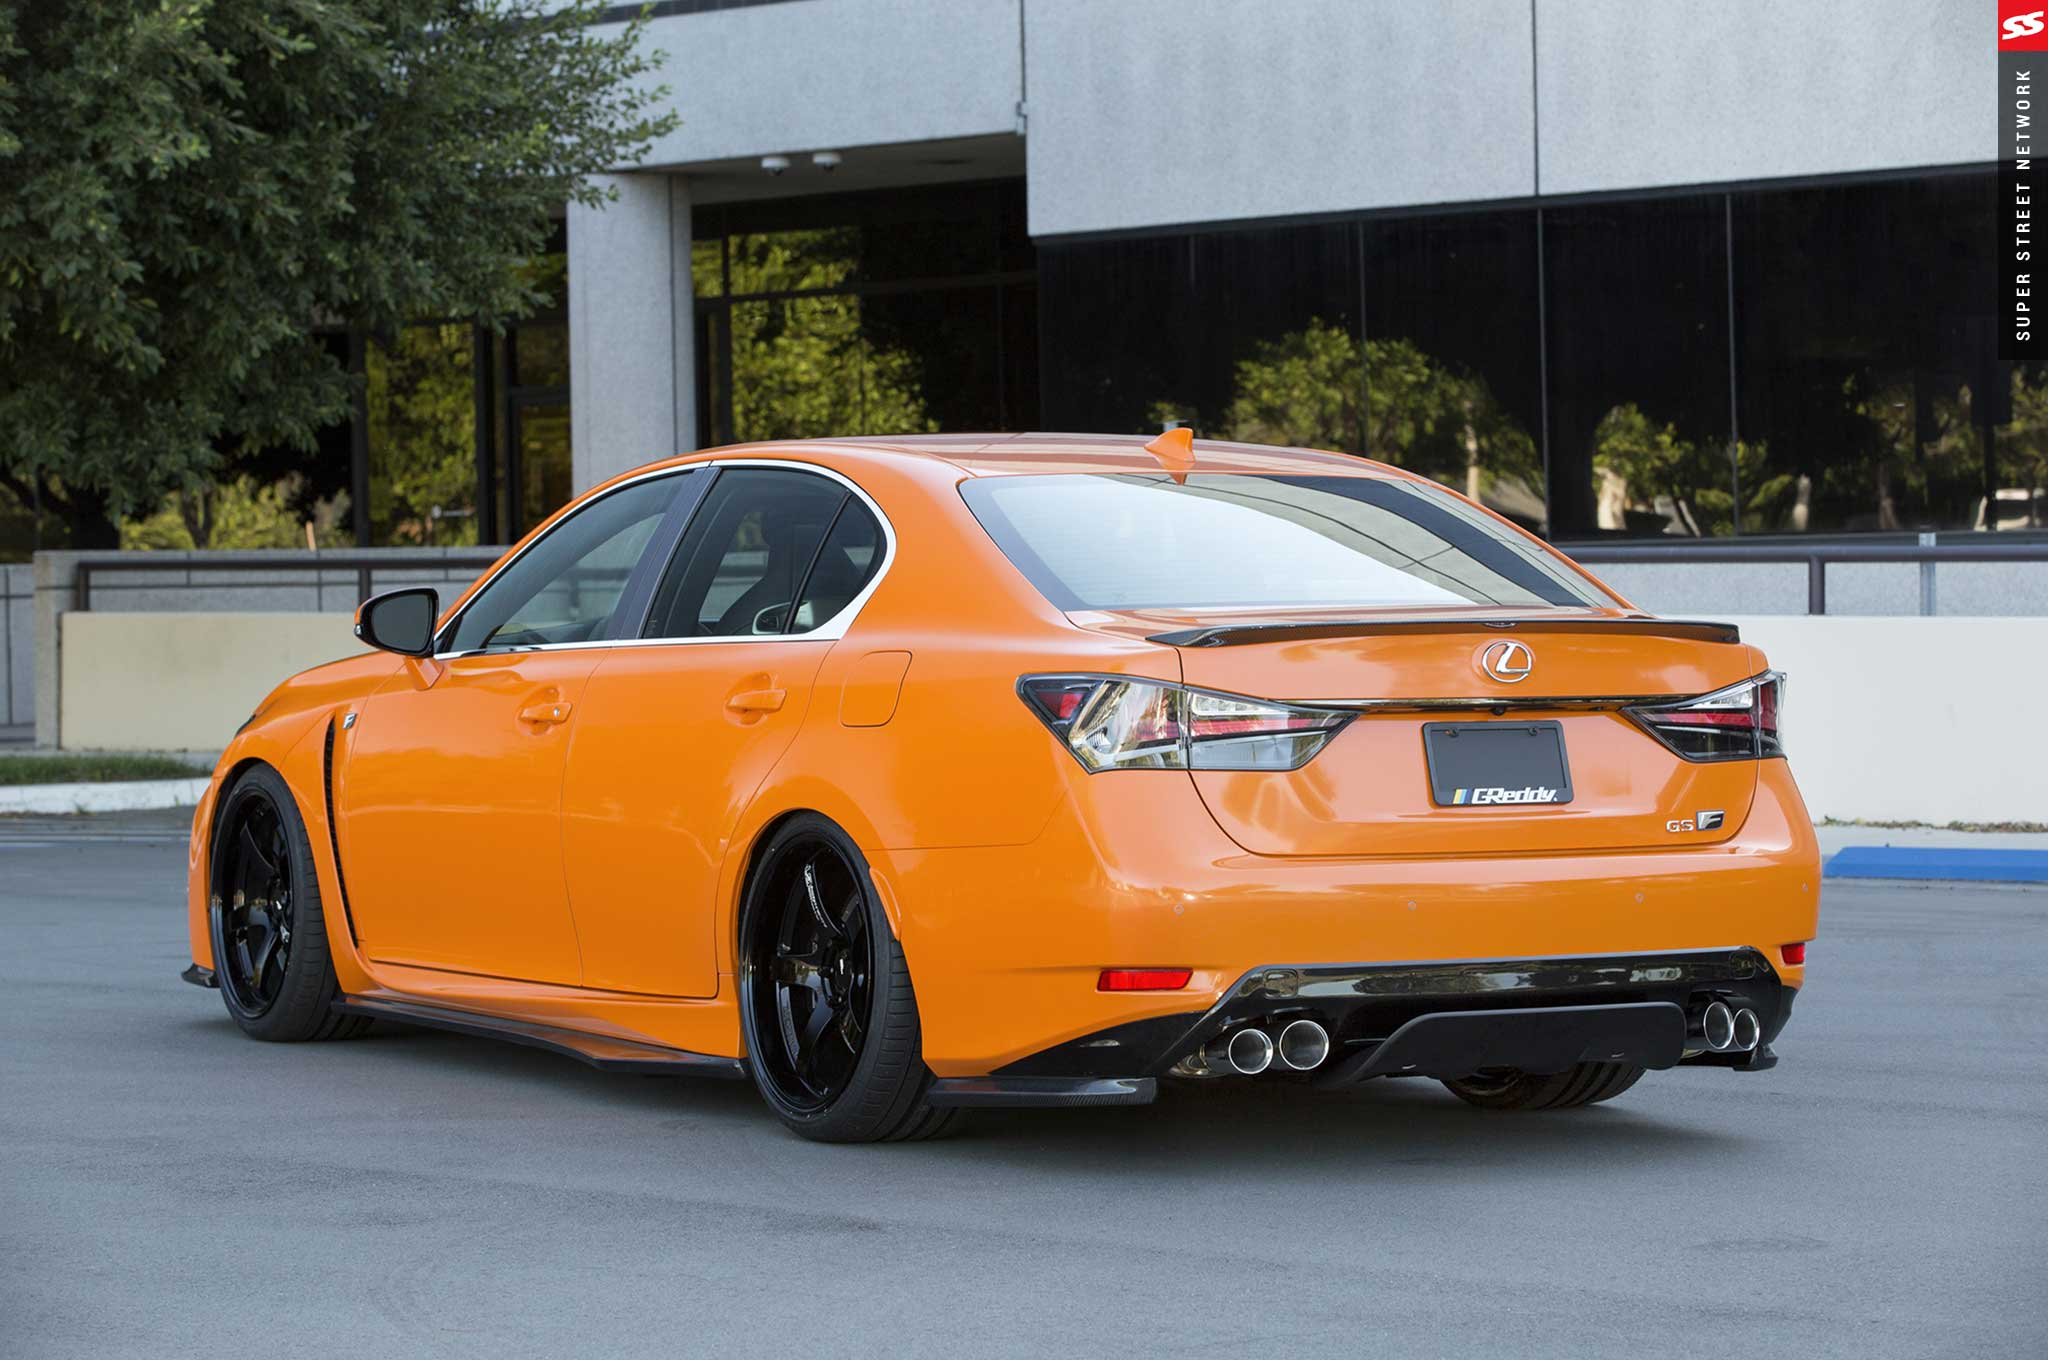 2016 Lexus GS F Review - 20 Things You